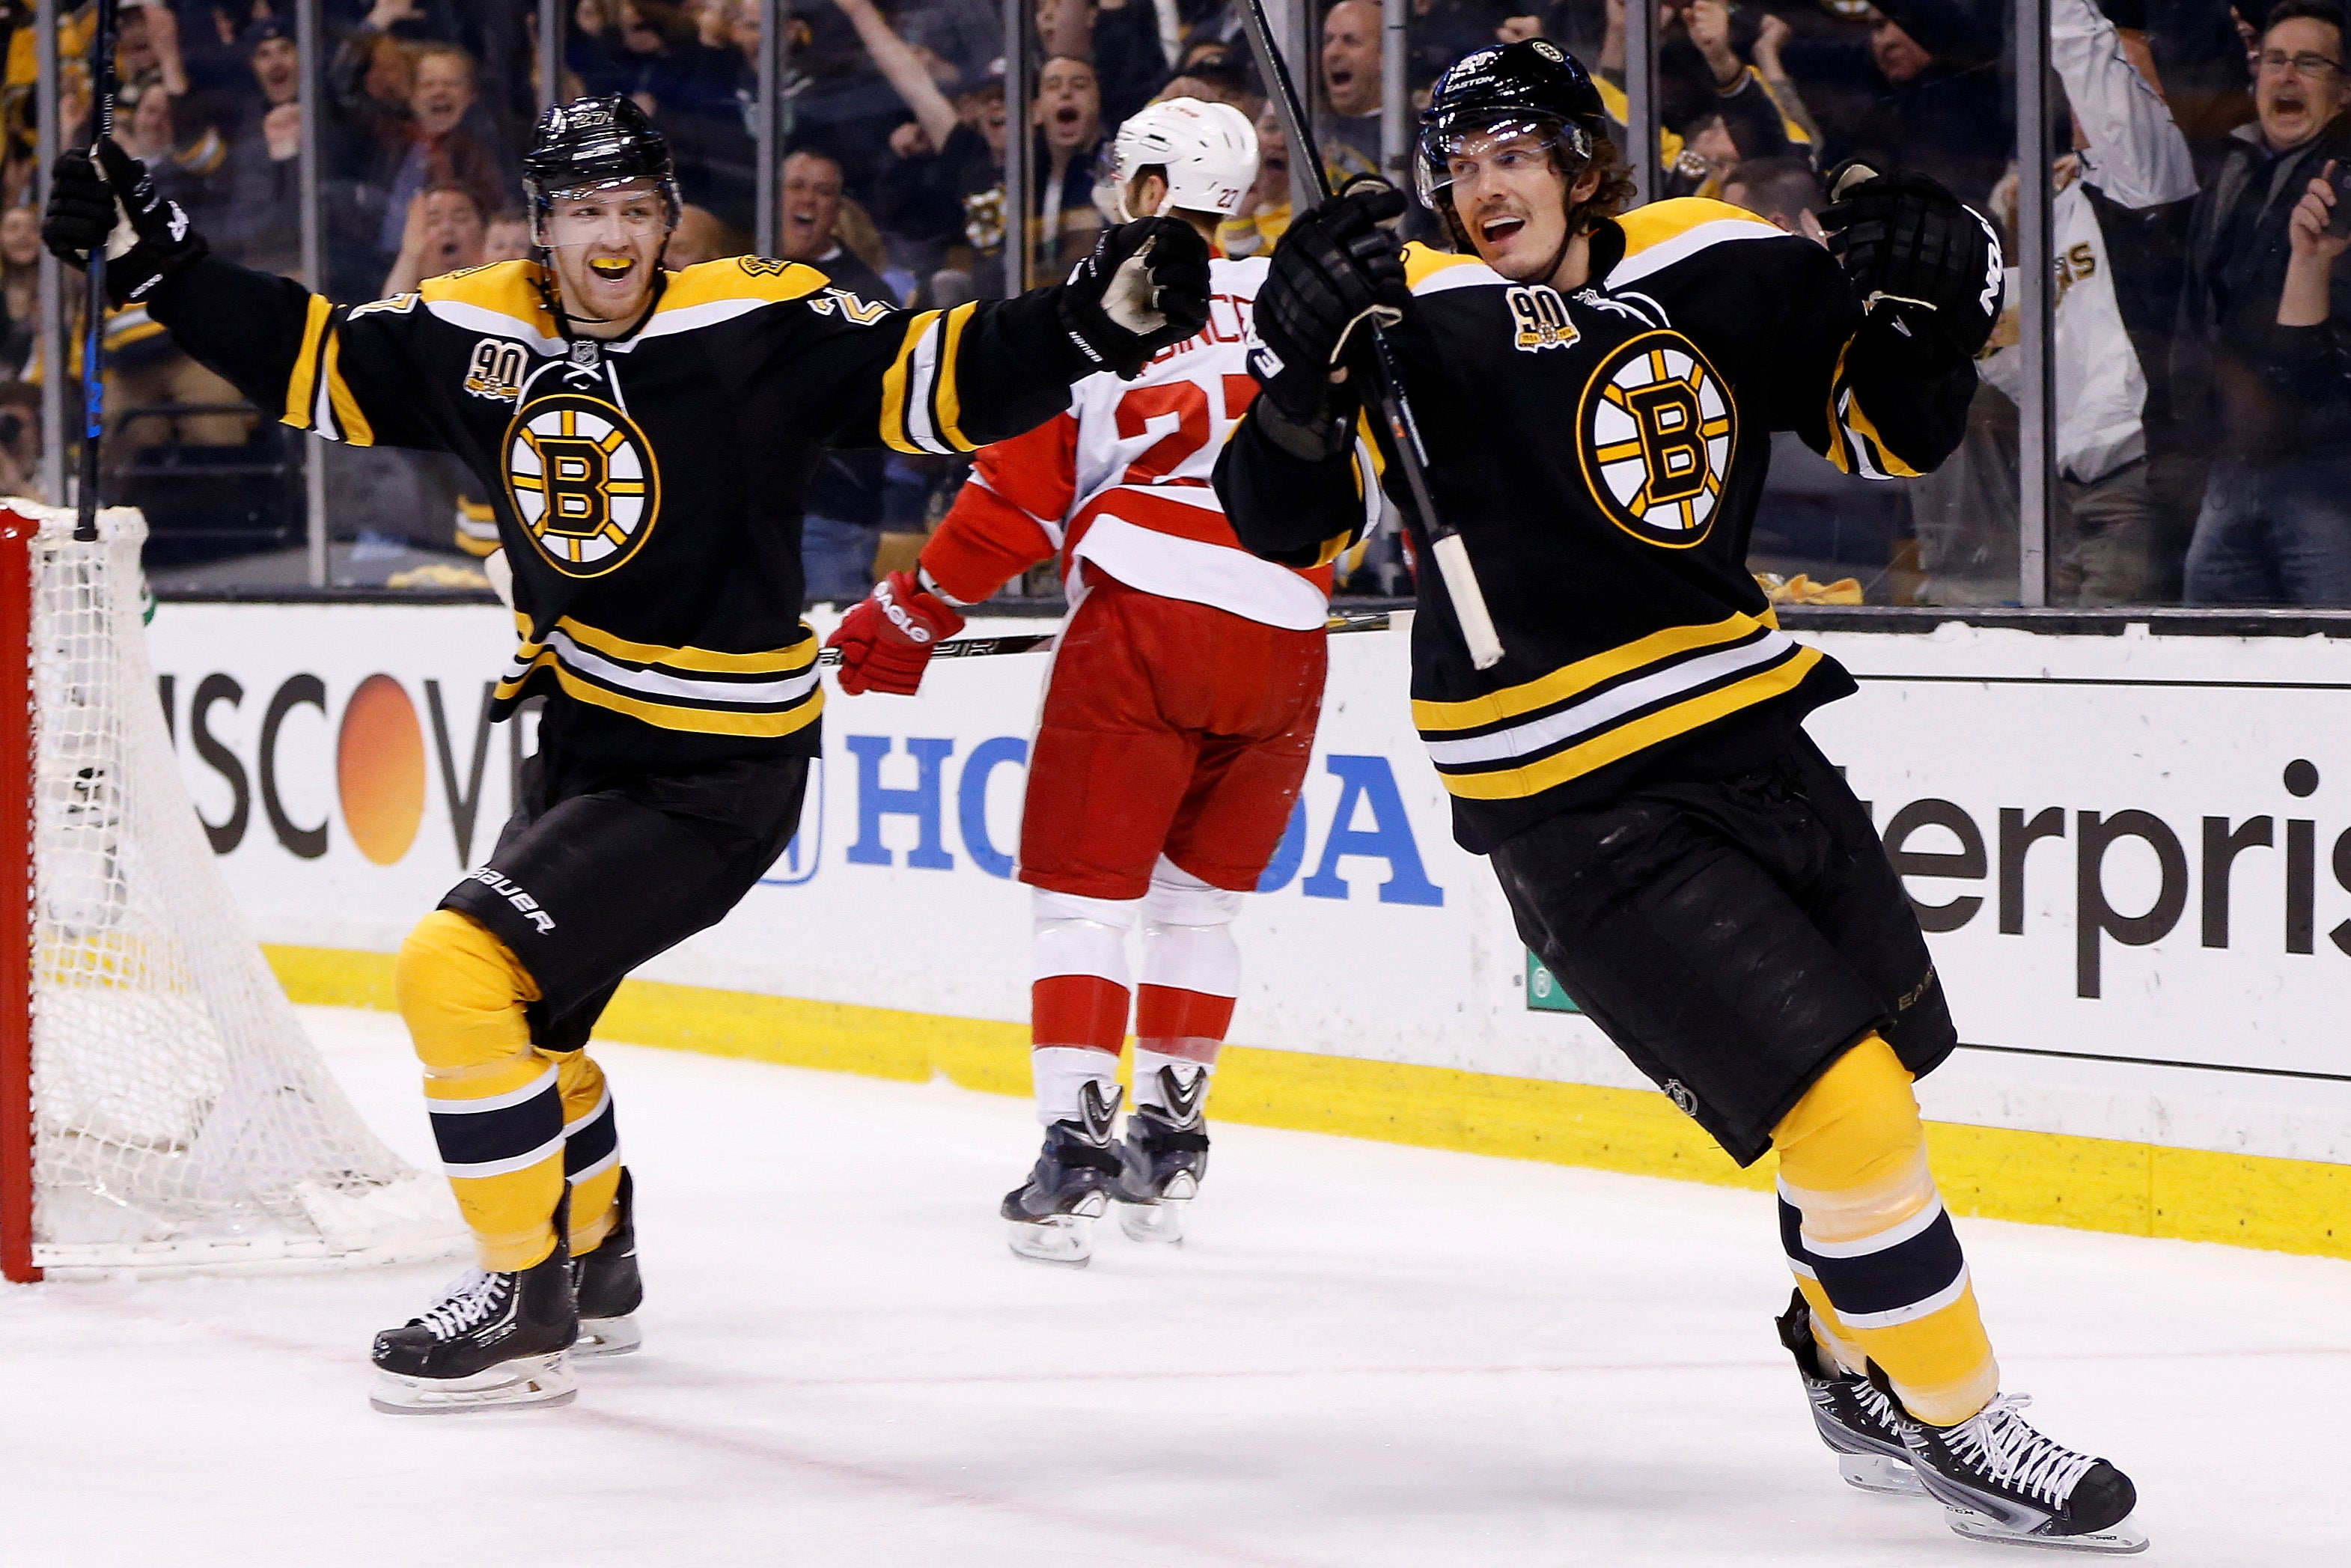 2014-04-26T193632Z_173762249_NOCID_RTRMADP_3_NHL-STANLEY-CUP-PLAYOFFS-DETROIT-RED-WINGS-AT-BOSTON-BRUINS.jpg